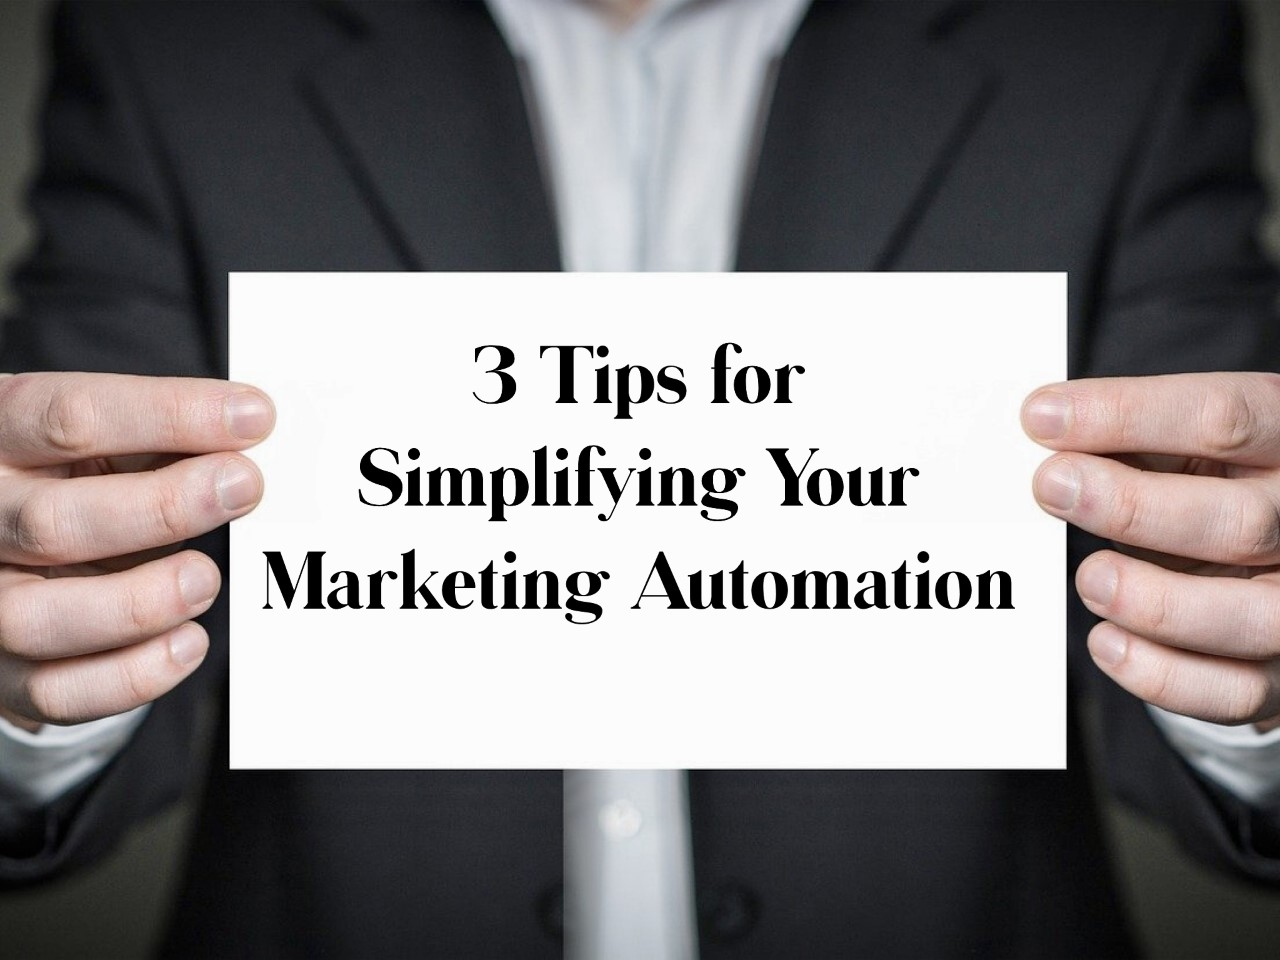 3 Tips for Simplifying Your Marketing Automation